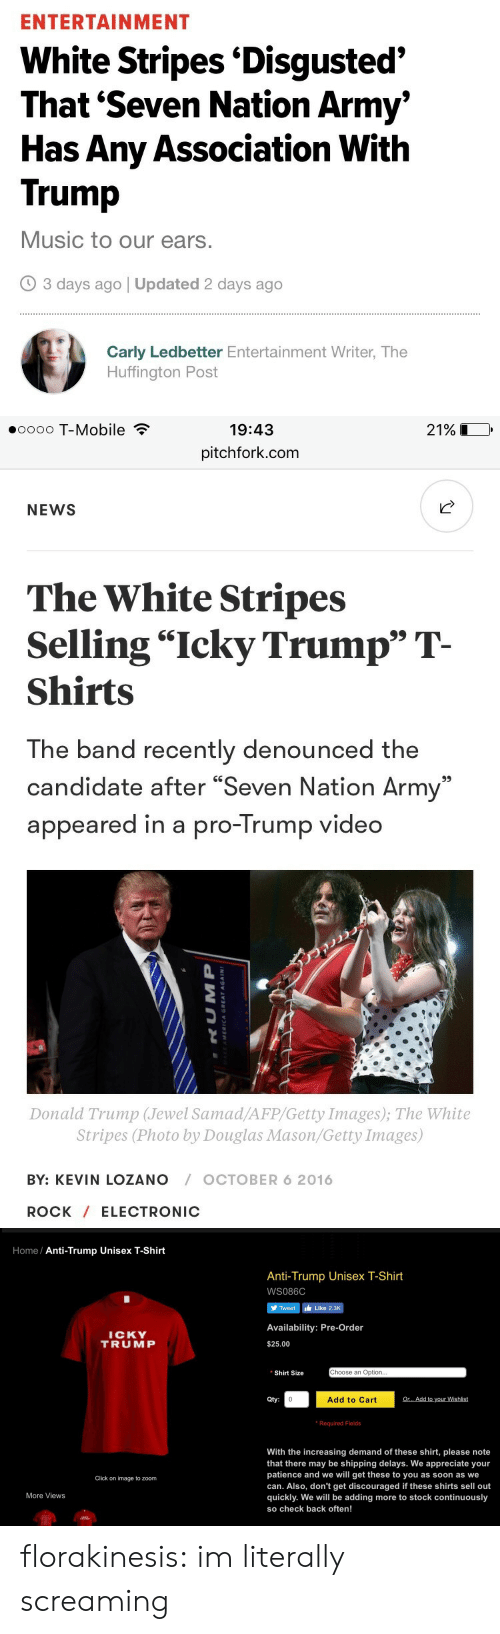 """Increasing: ENTERTAINMENT  White Stripes 'Disgusted'  That 'Seven Nation Army'  Has Any Association With  Trump  Music to our ears.  3 days ago 